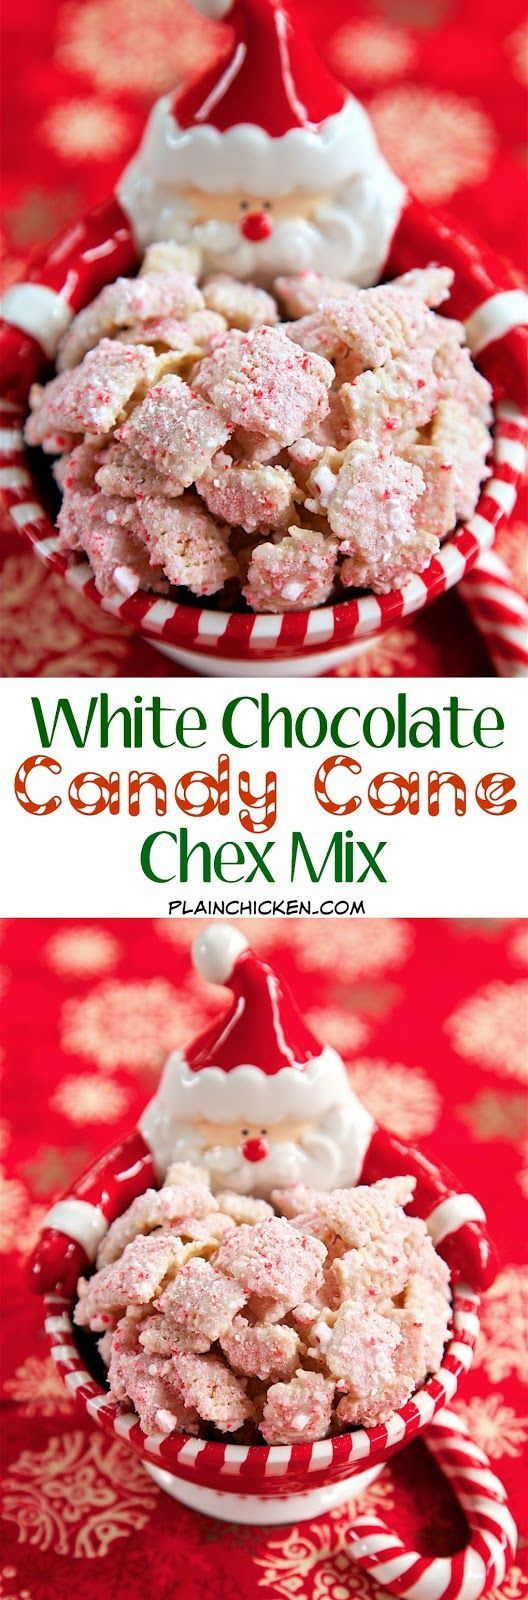 White Chocolate Candy Cane Chex Mix - only 3 ingredients!! This stuff is addictive! I couldn't walk past it without having a bite. Makes a great quick gift for friends, neighbors, teachers and co-workers. Quick and easy gift that everyone will enjoy!